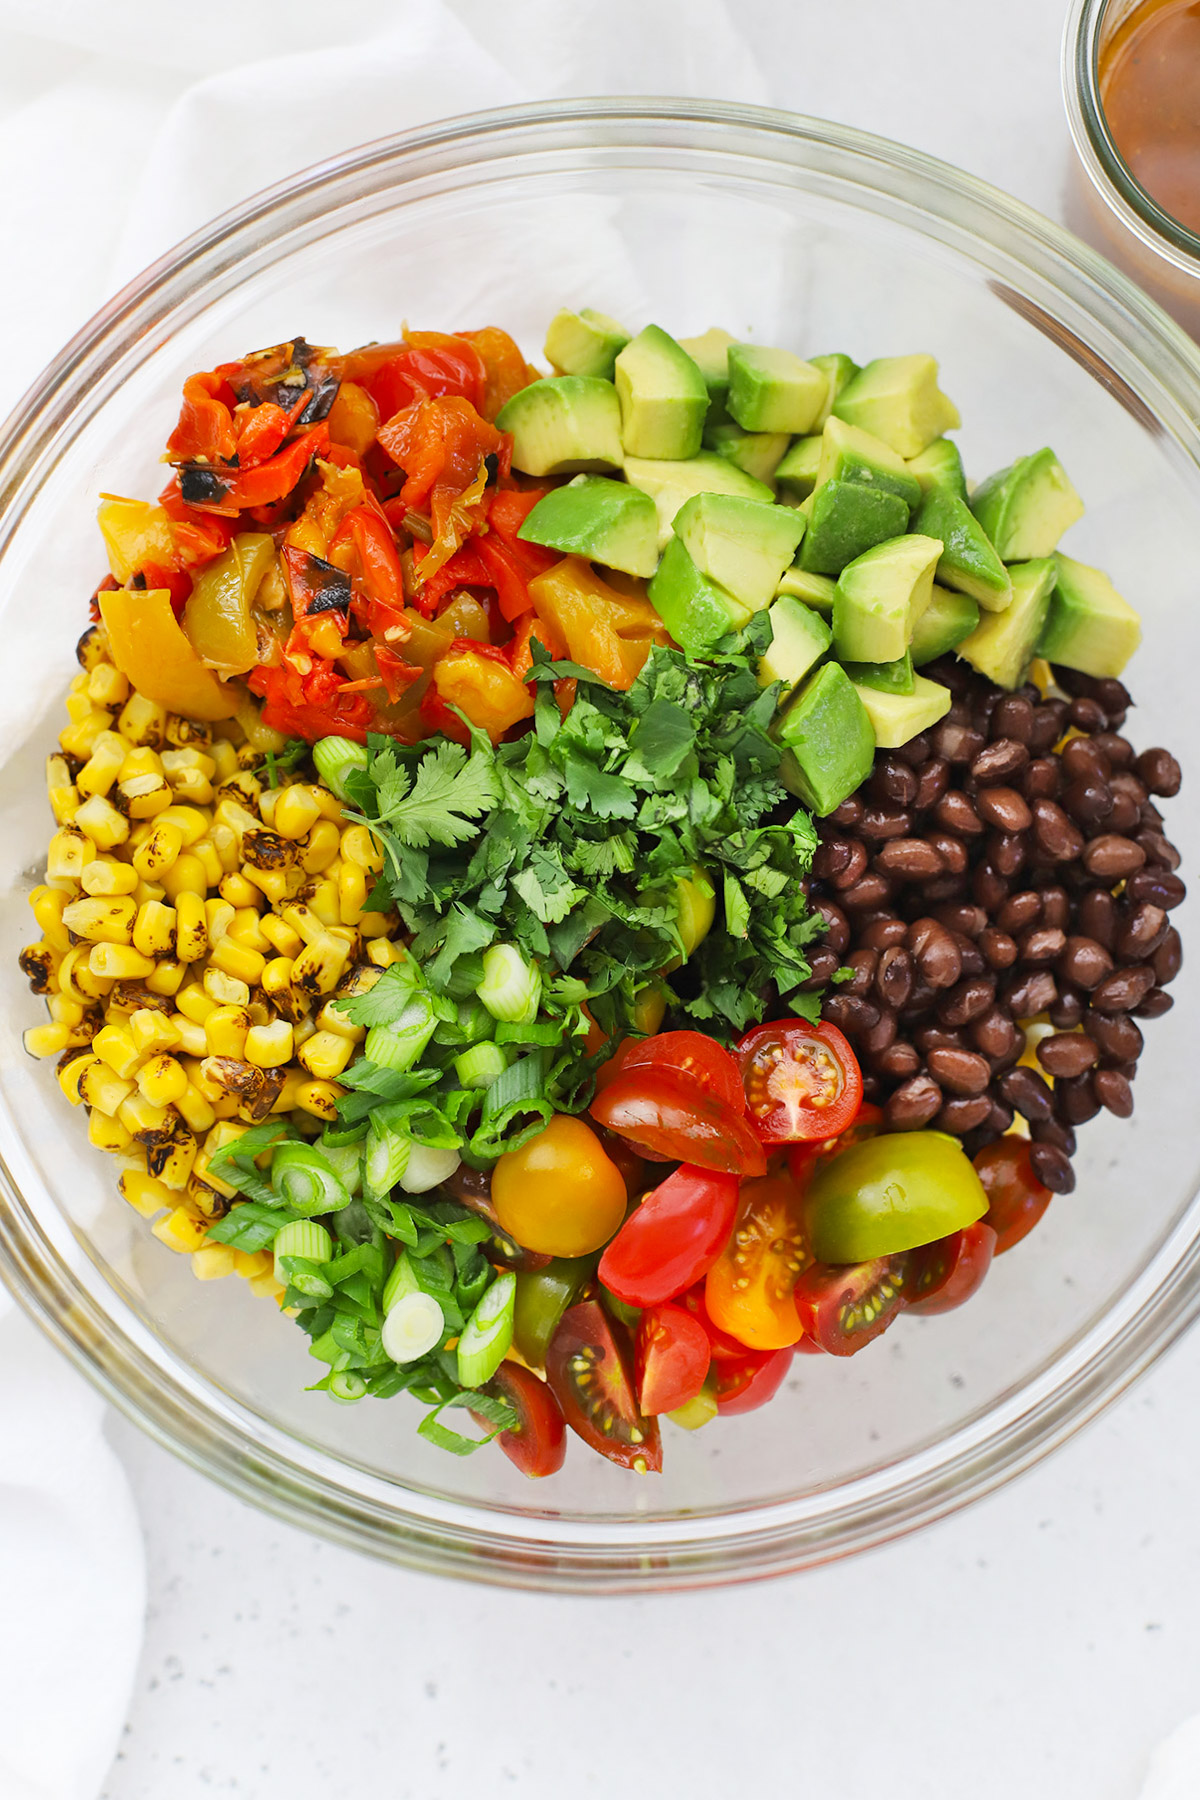 Overhead view of a glass mixing bowl with ingredients for healthy taco pasta salad on a white background